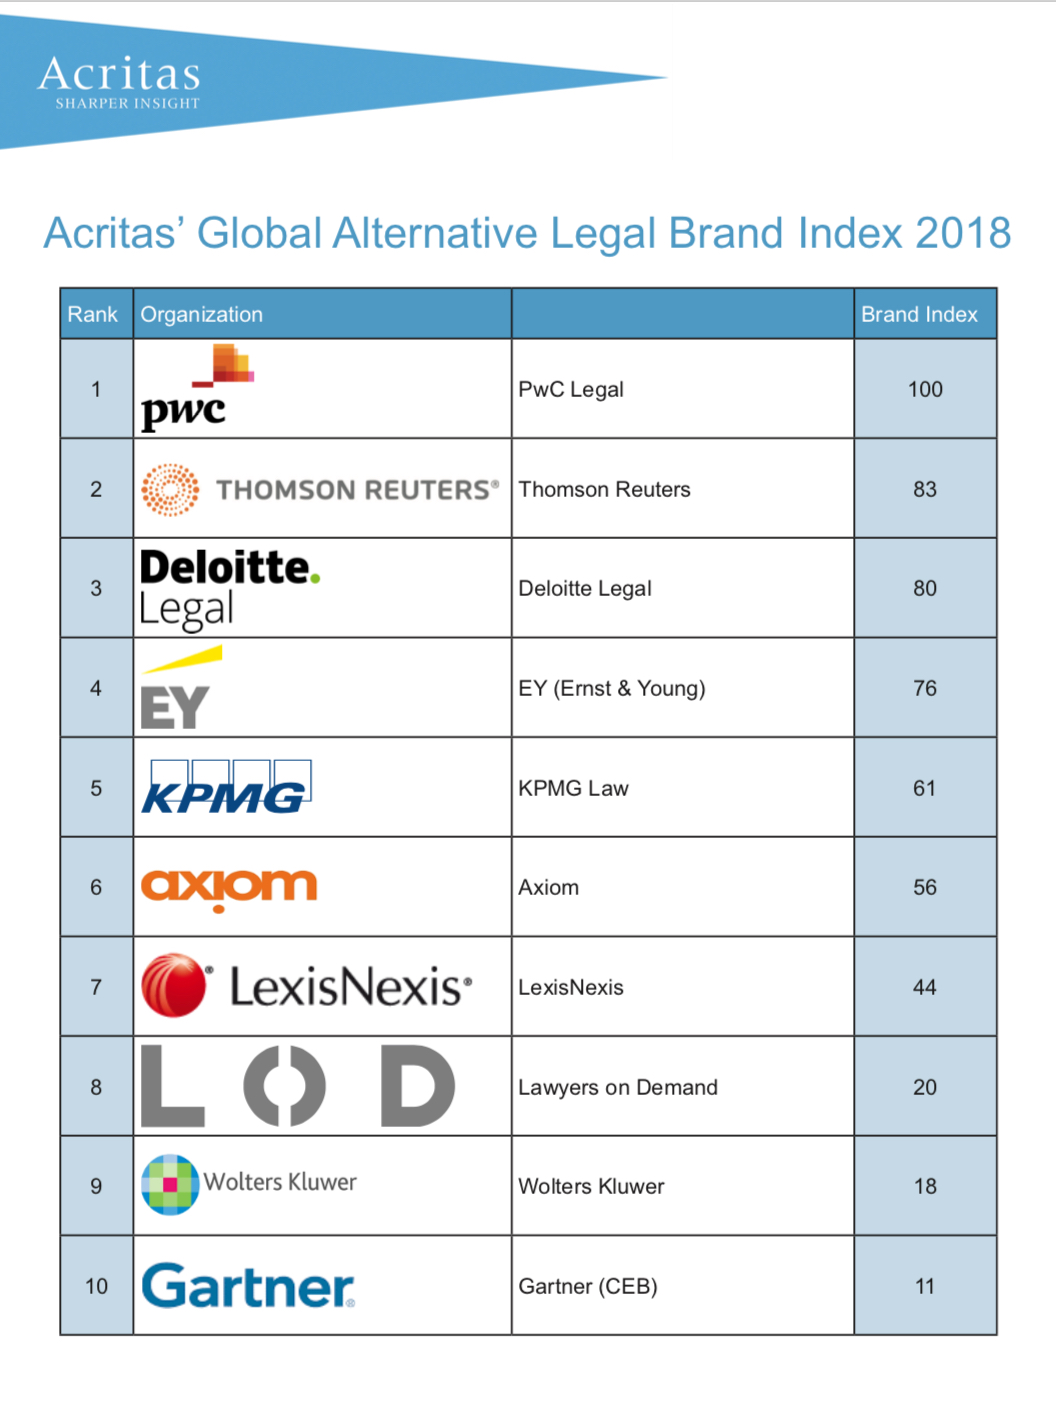 Acritas' second annual Global Alternative Legal Brand Index sees PwC Legal emerge as the new leader in 2018.